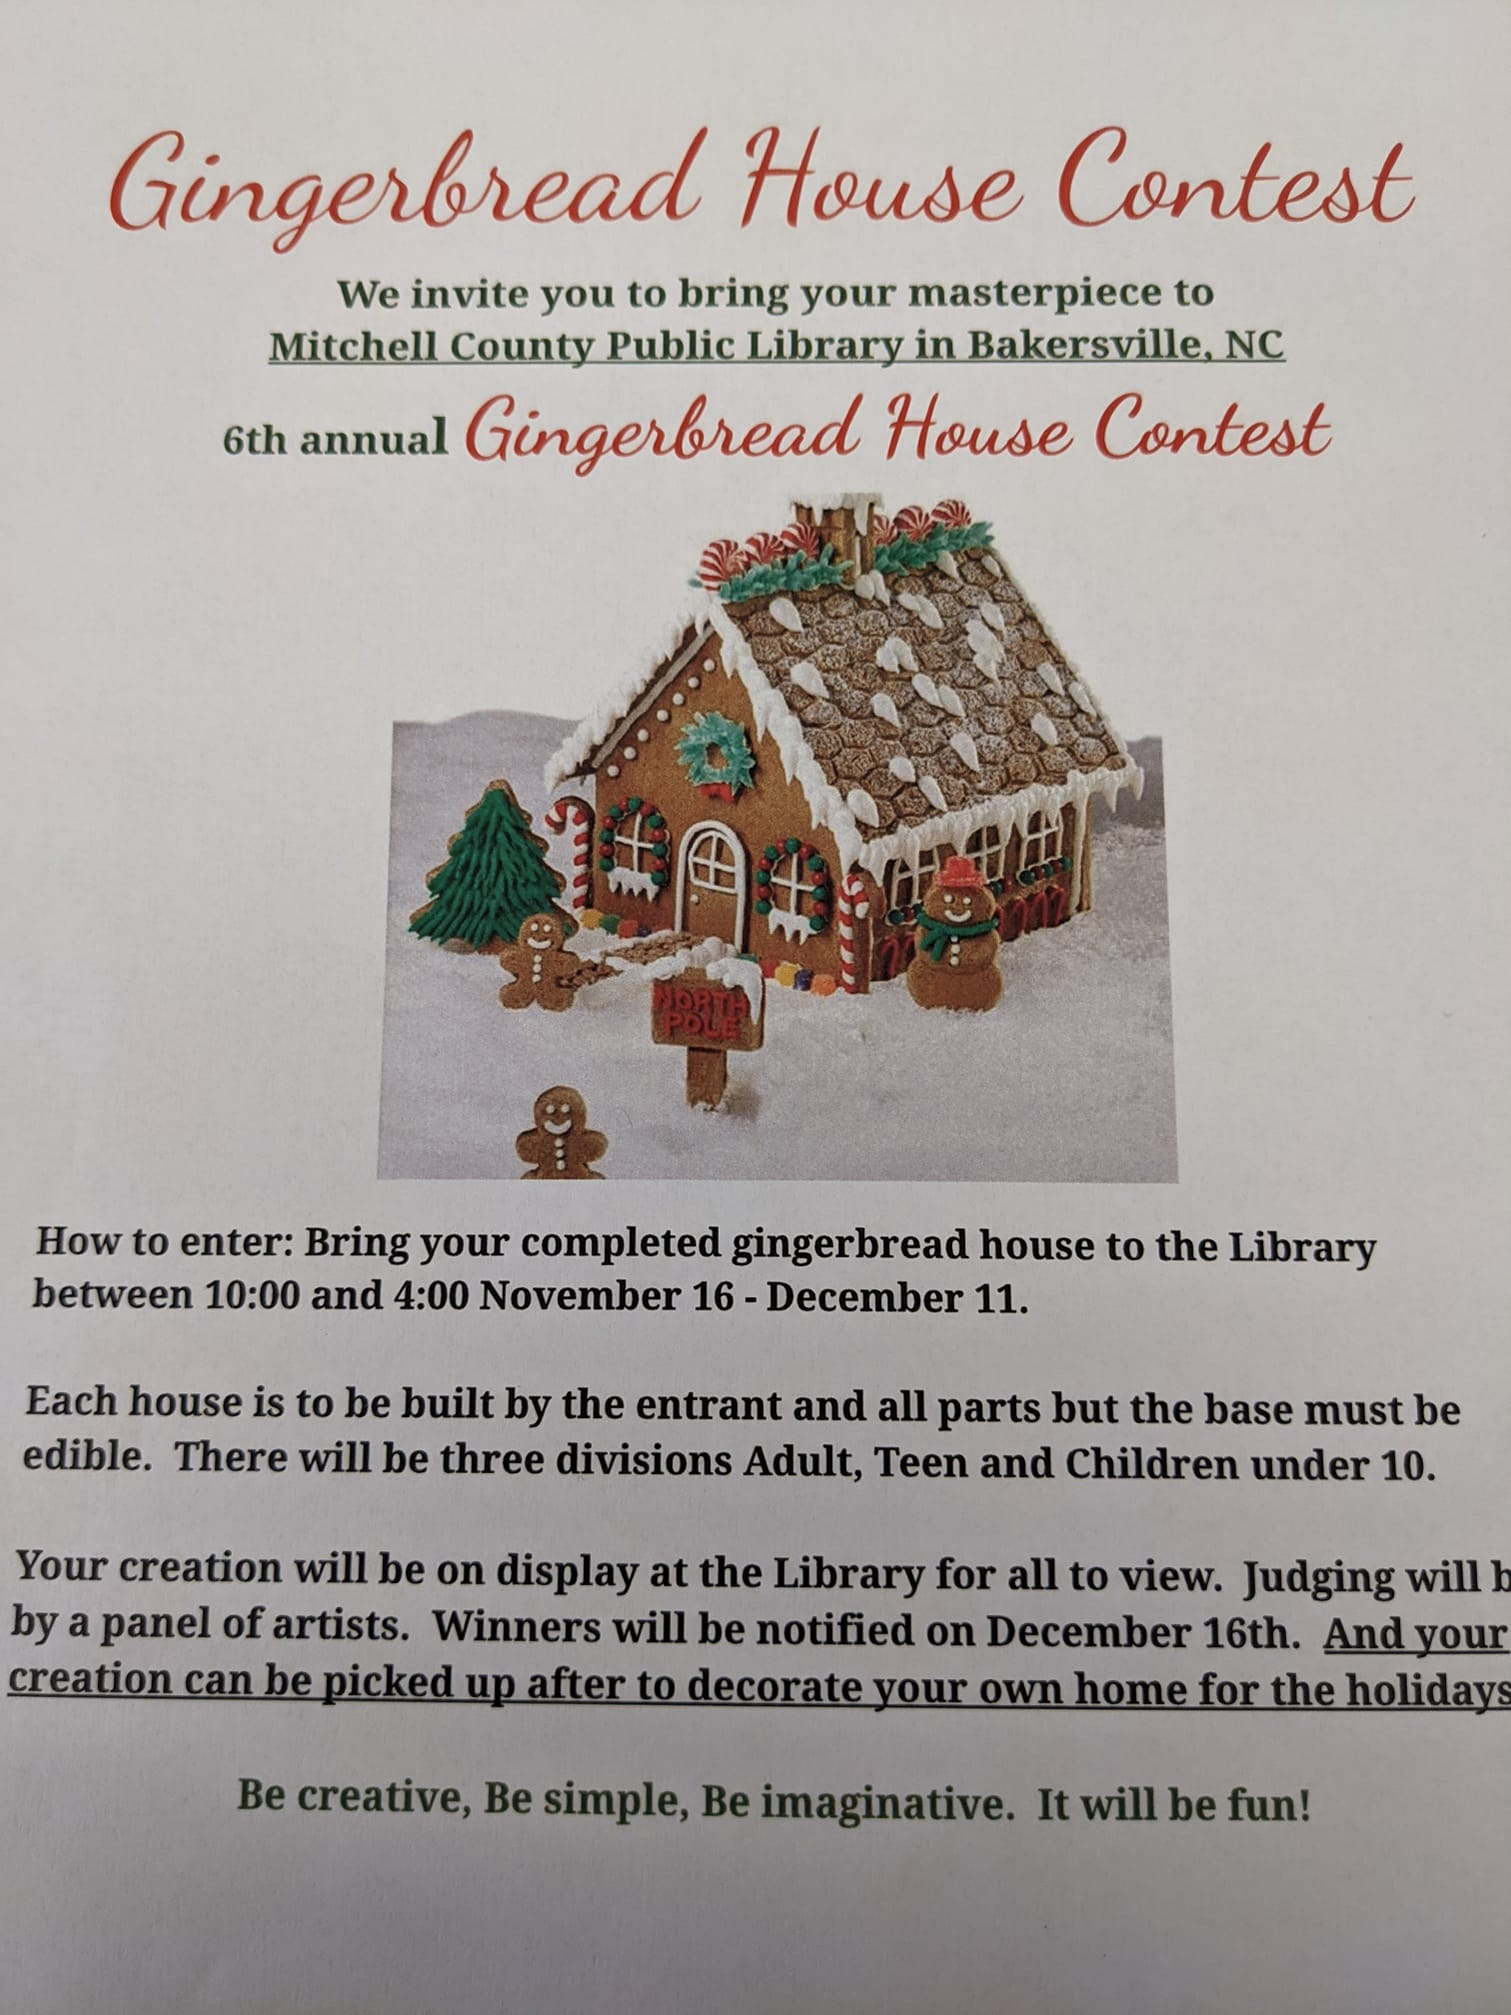 Describes the gingerbread house competition. Houses can be dropped off through Dec. 11